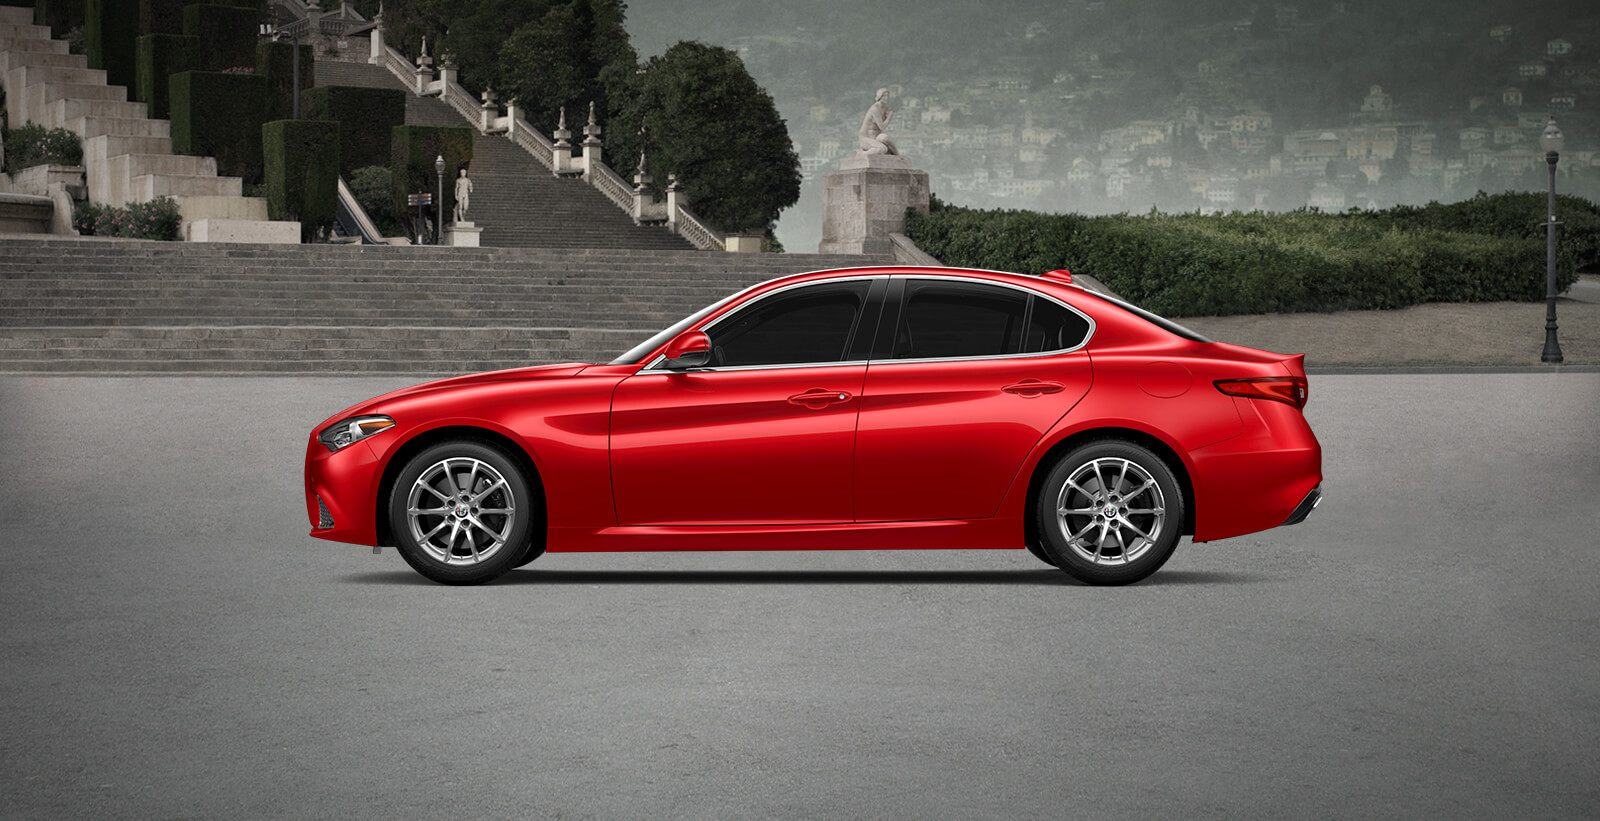 2018 Alfa Romeo Giulia Side View